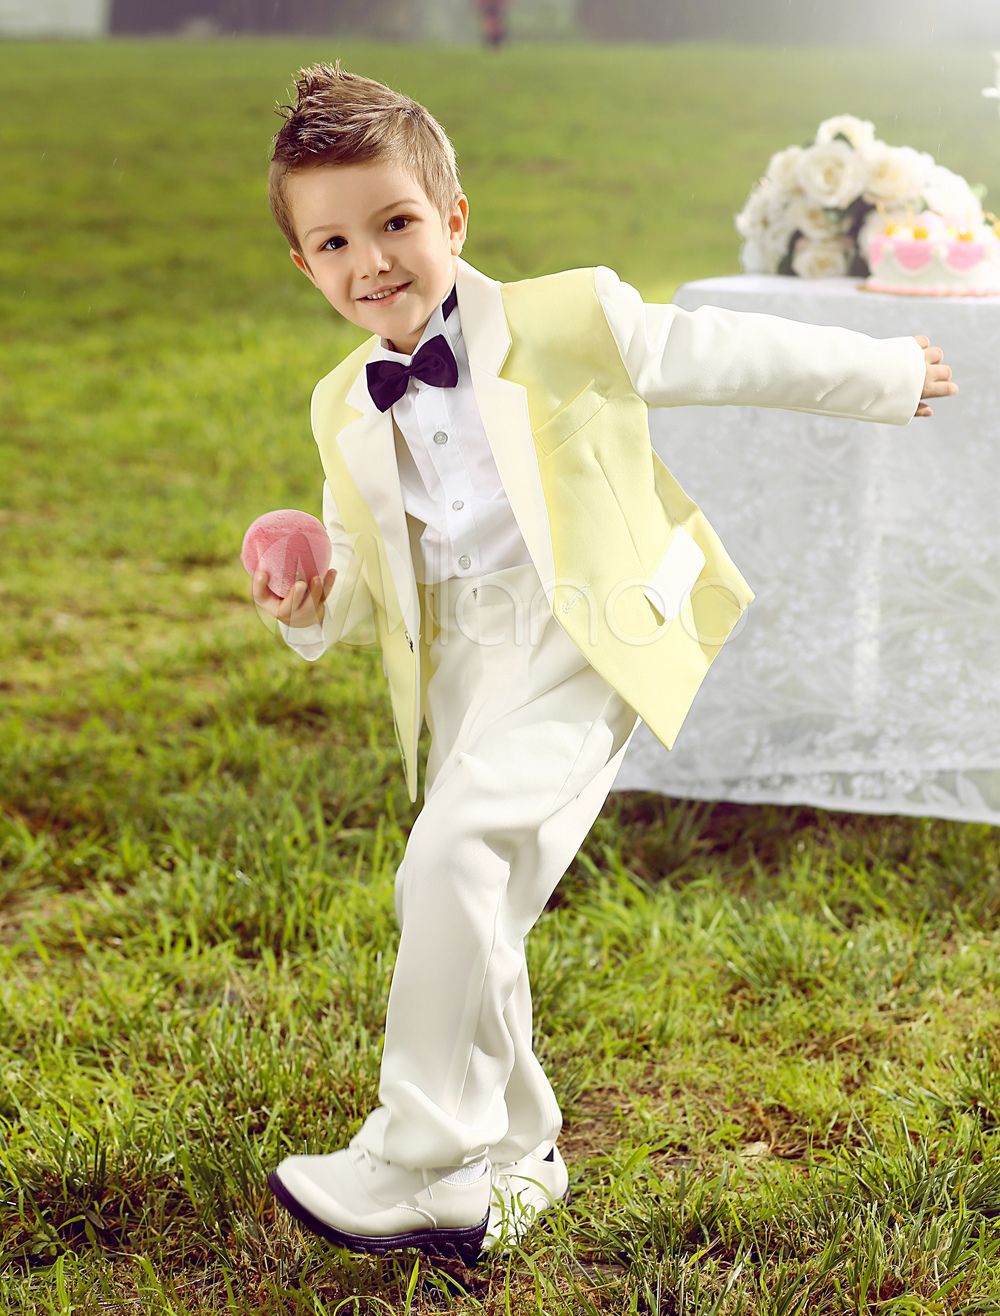 Baby Boy Suit Set Kids Wedding Tuxedo Yellow Jacket Pants Shirts Bow Tie 4 Pcs Ring Bearer Suits